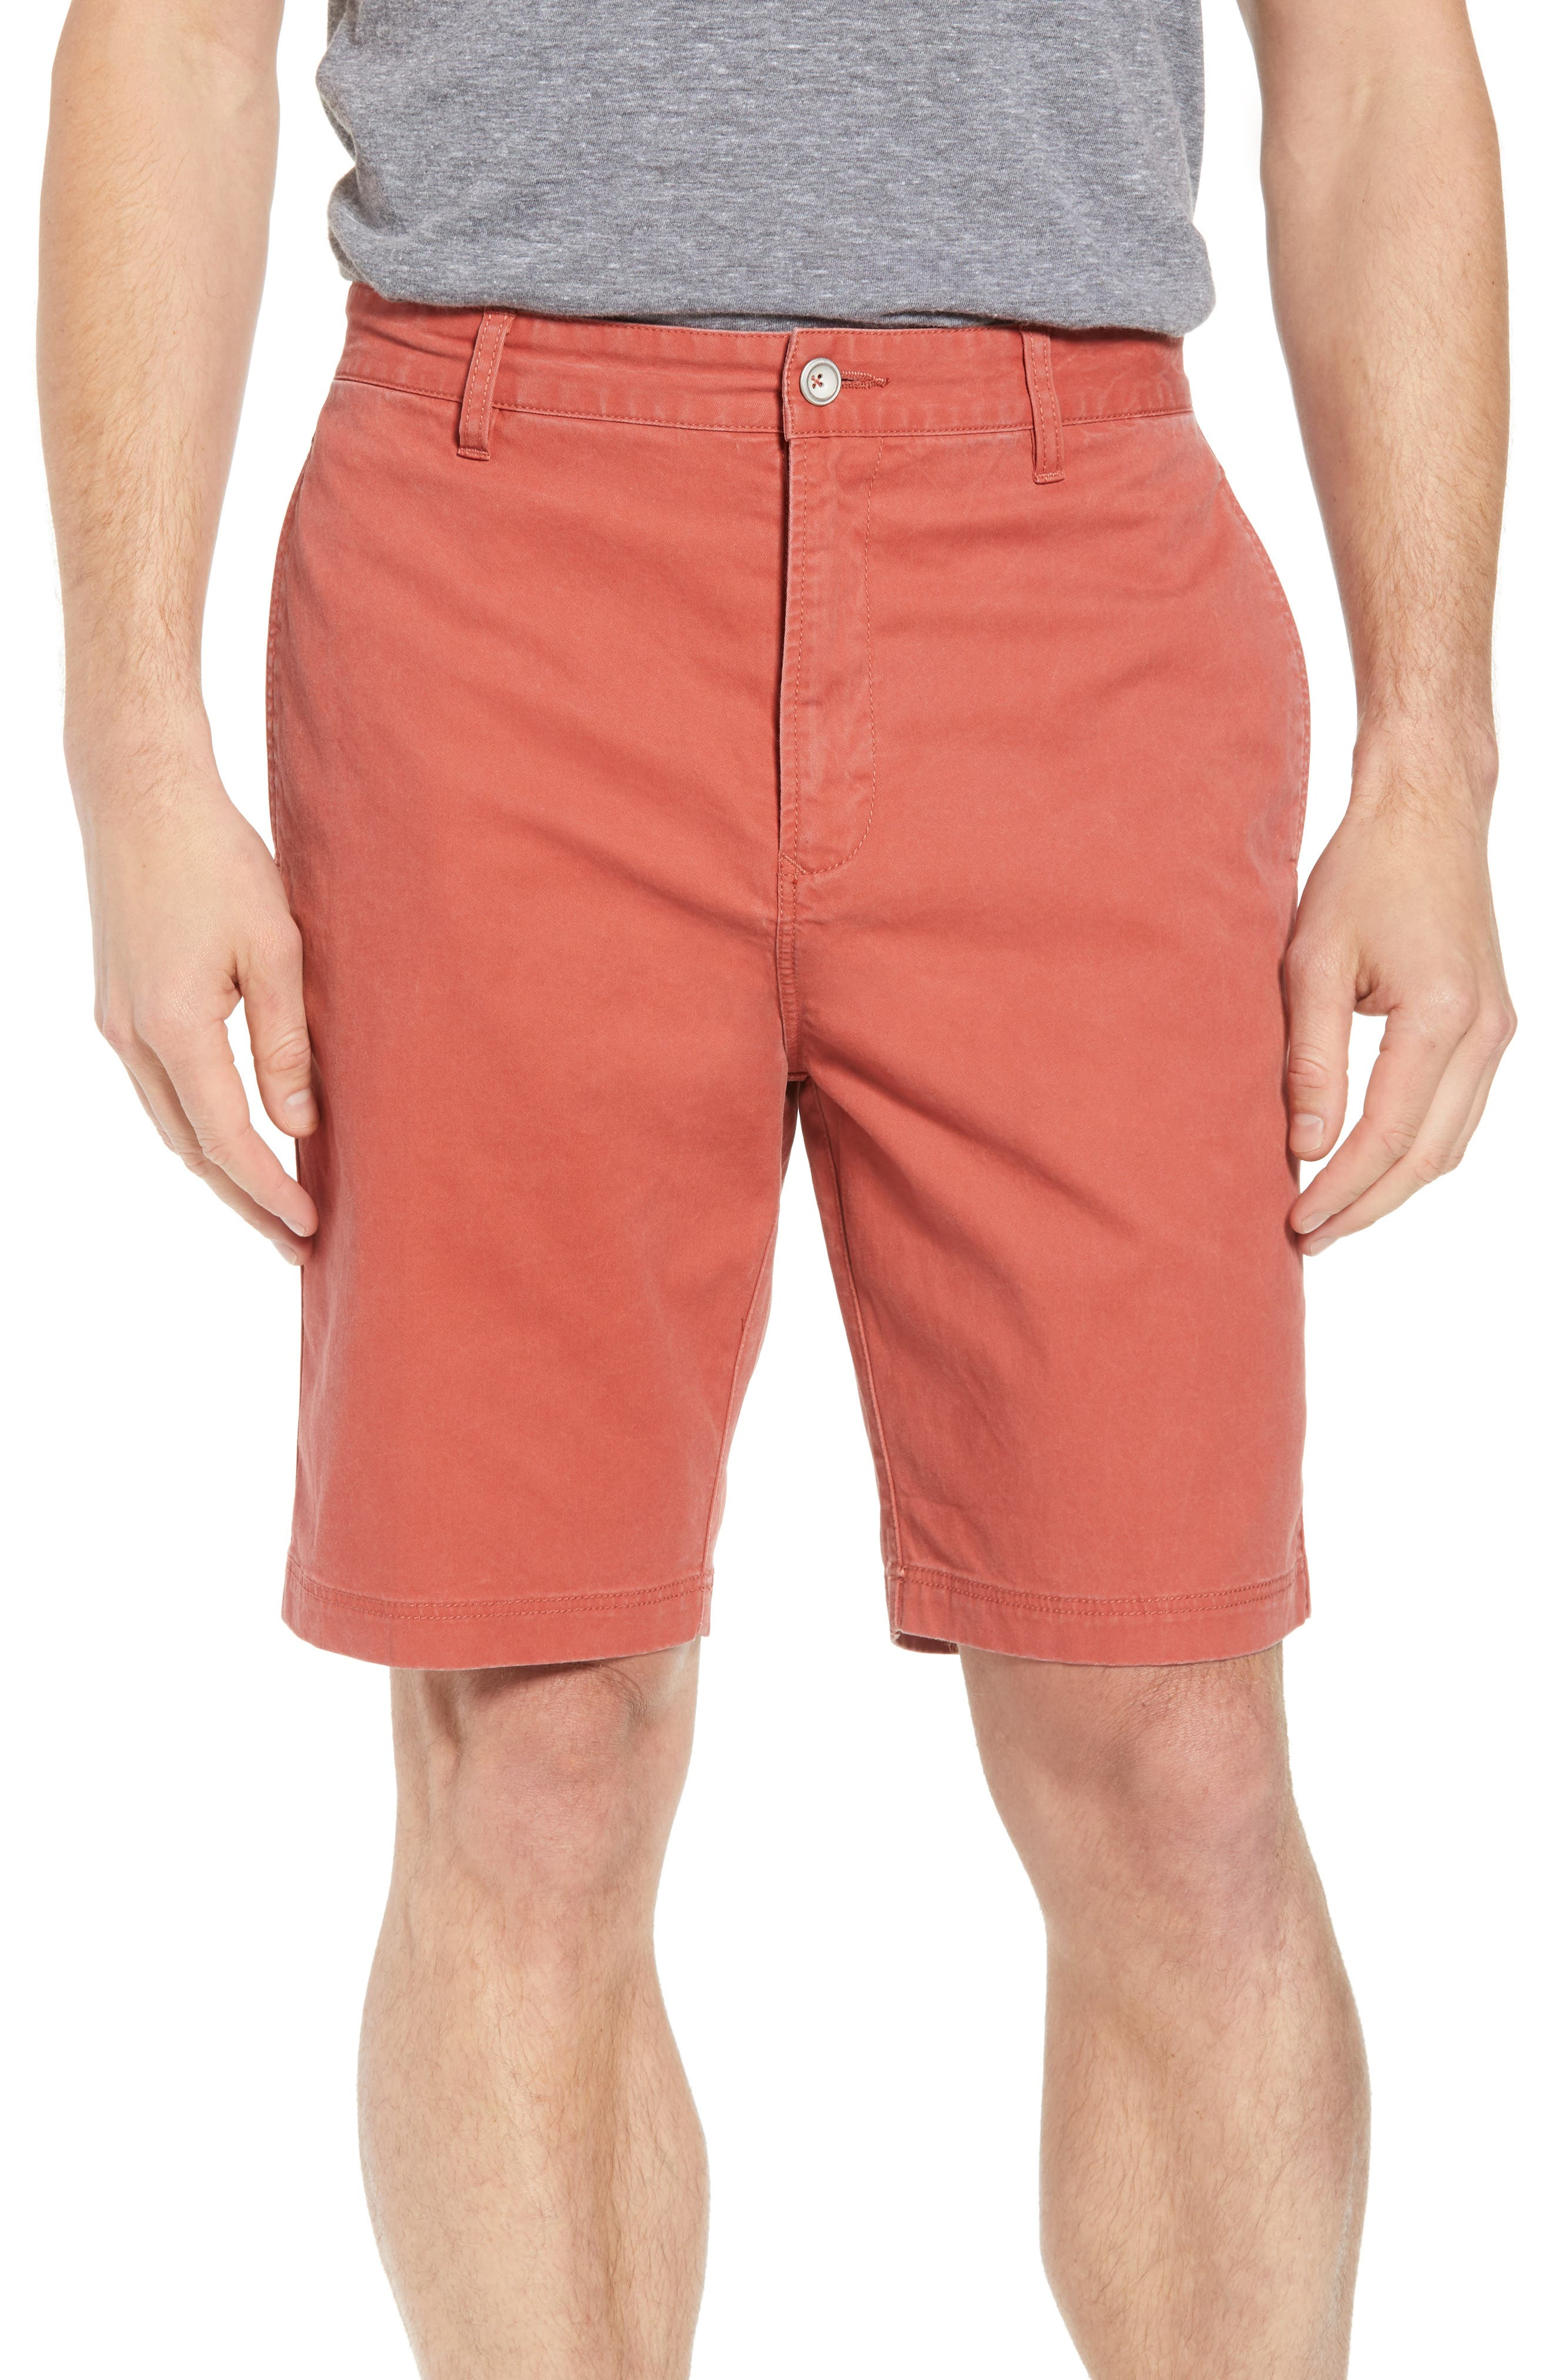 Glenburn Shorts,                             Main thumbnail 1, color,                             Red Ochre